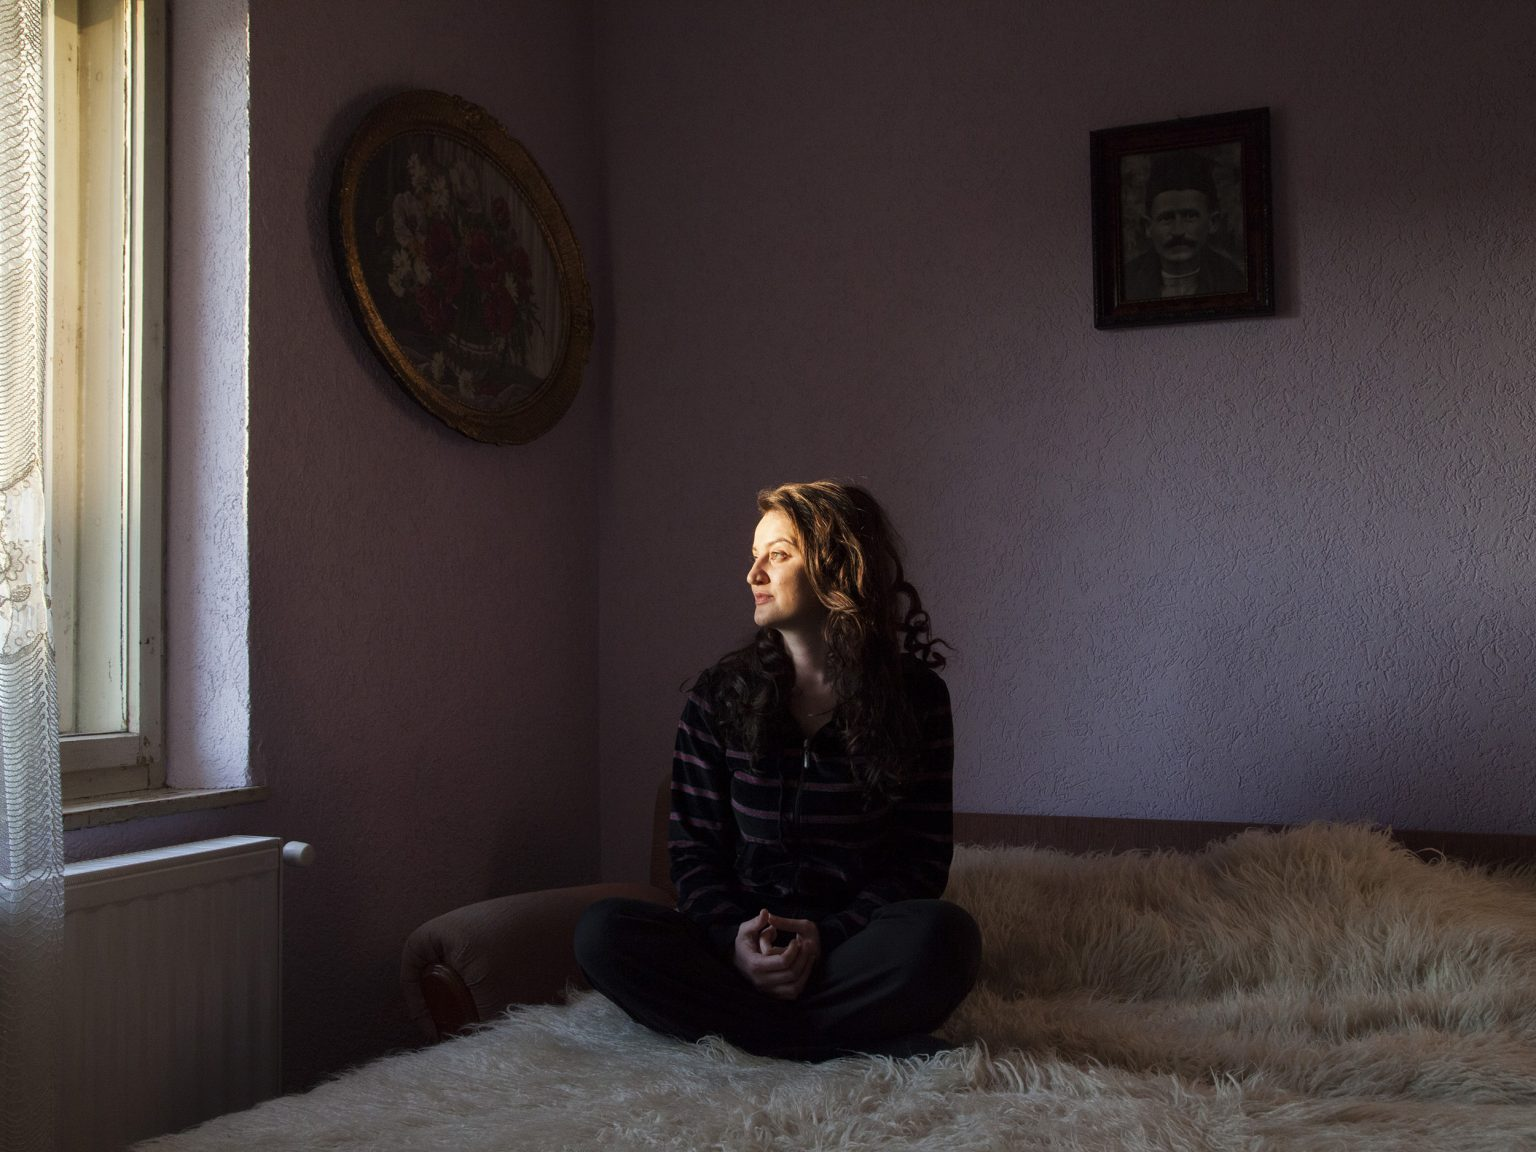 Katarina Brkic in her house in the Serbian village of Hoca i Madhe-Velika Hoça. She studied law in Mitrovica-Kosovska Mitrovica, but she does not see many options for her professional future, she will help her parents in the production of wine.